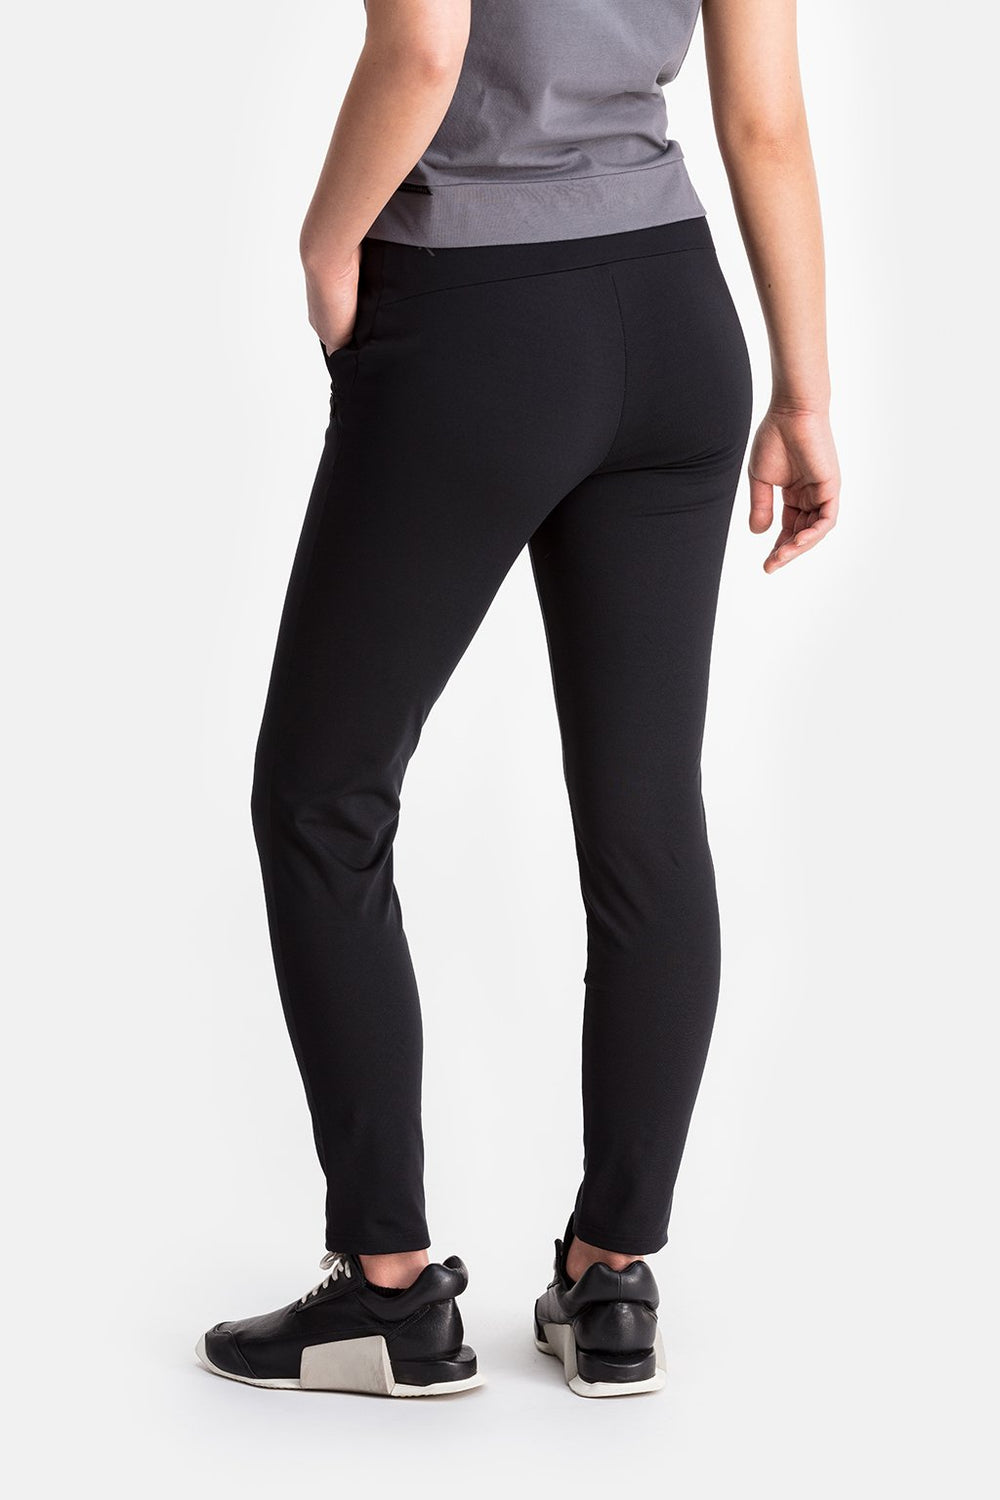 RYU Womens EveryWear Slim Pant in Black